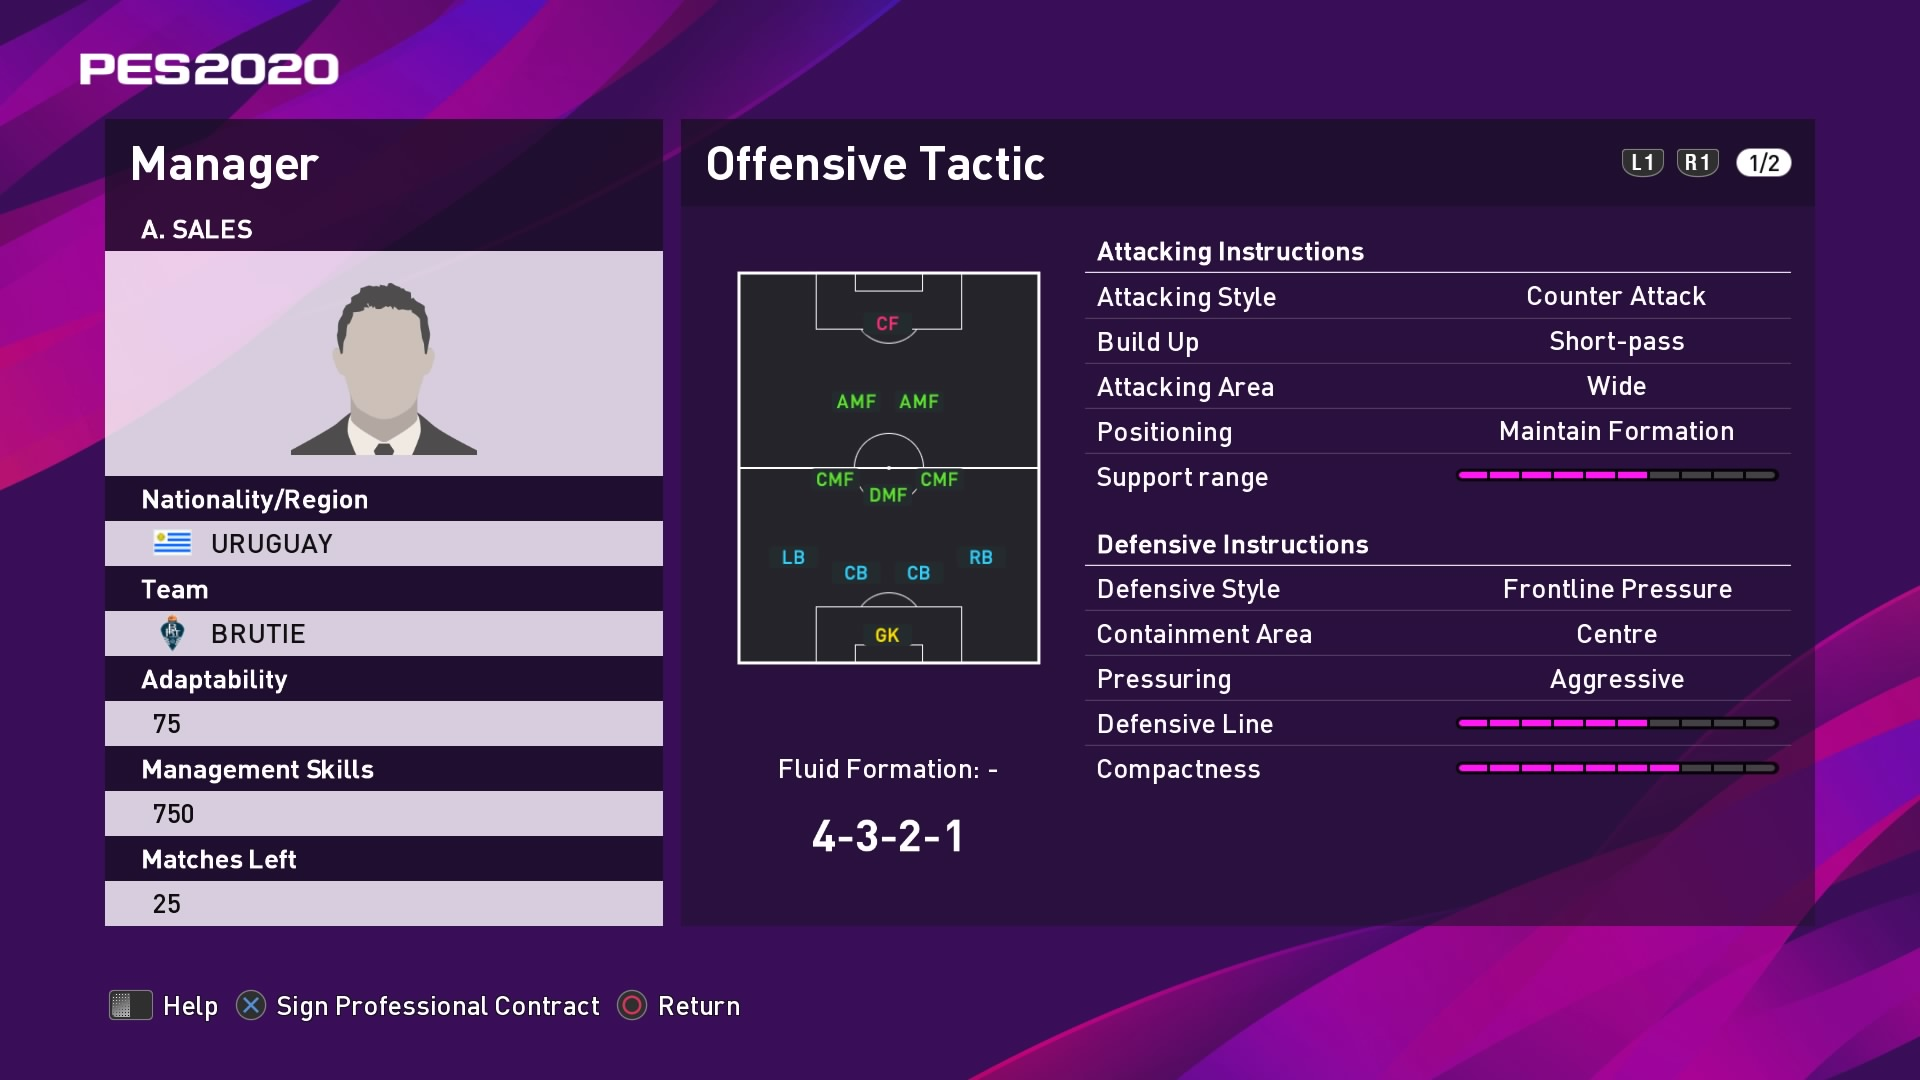 A. Sales (Diego López) Offensive Tactic in PES 2020 myClub